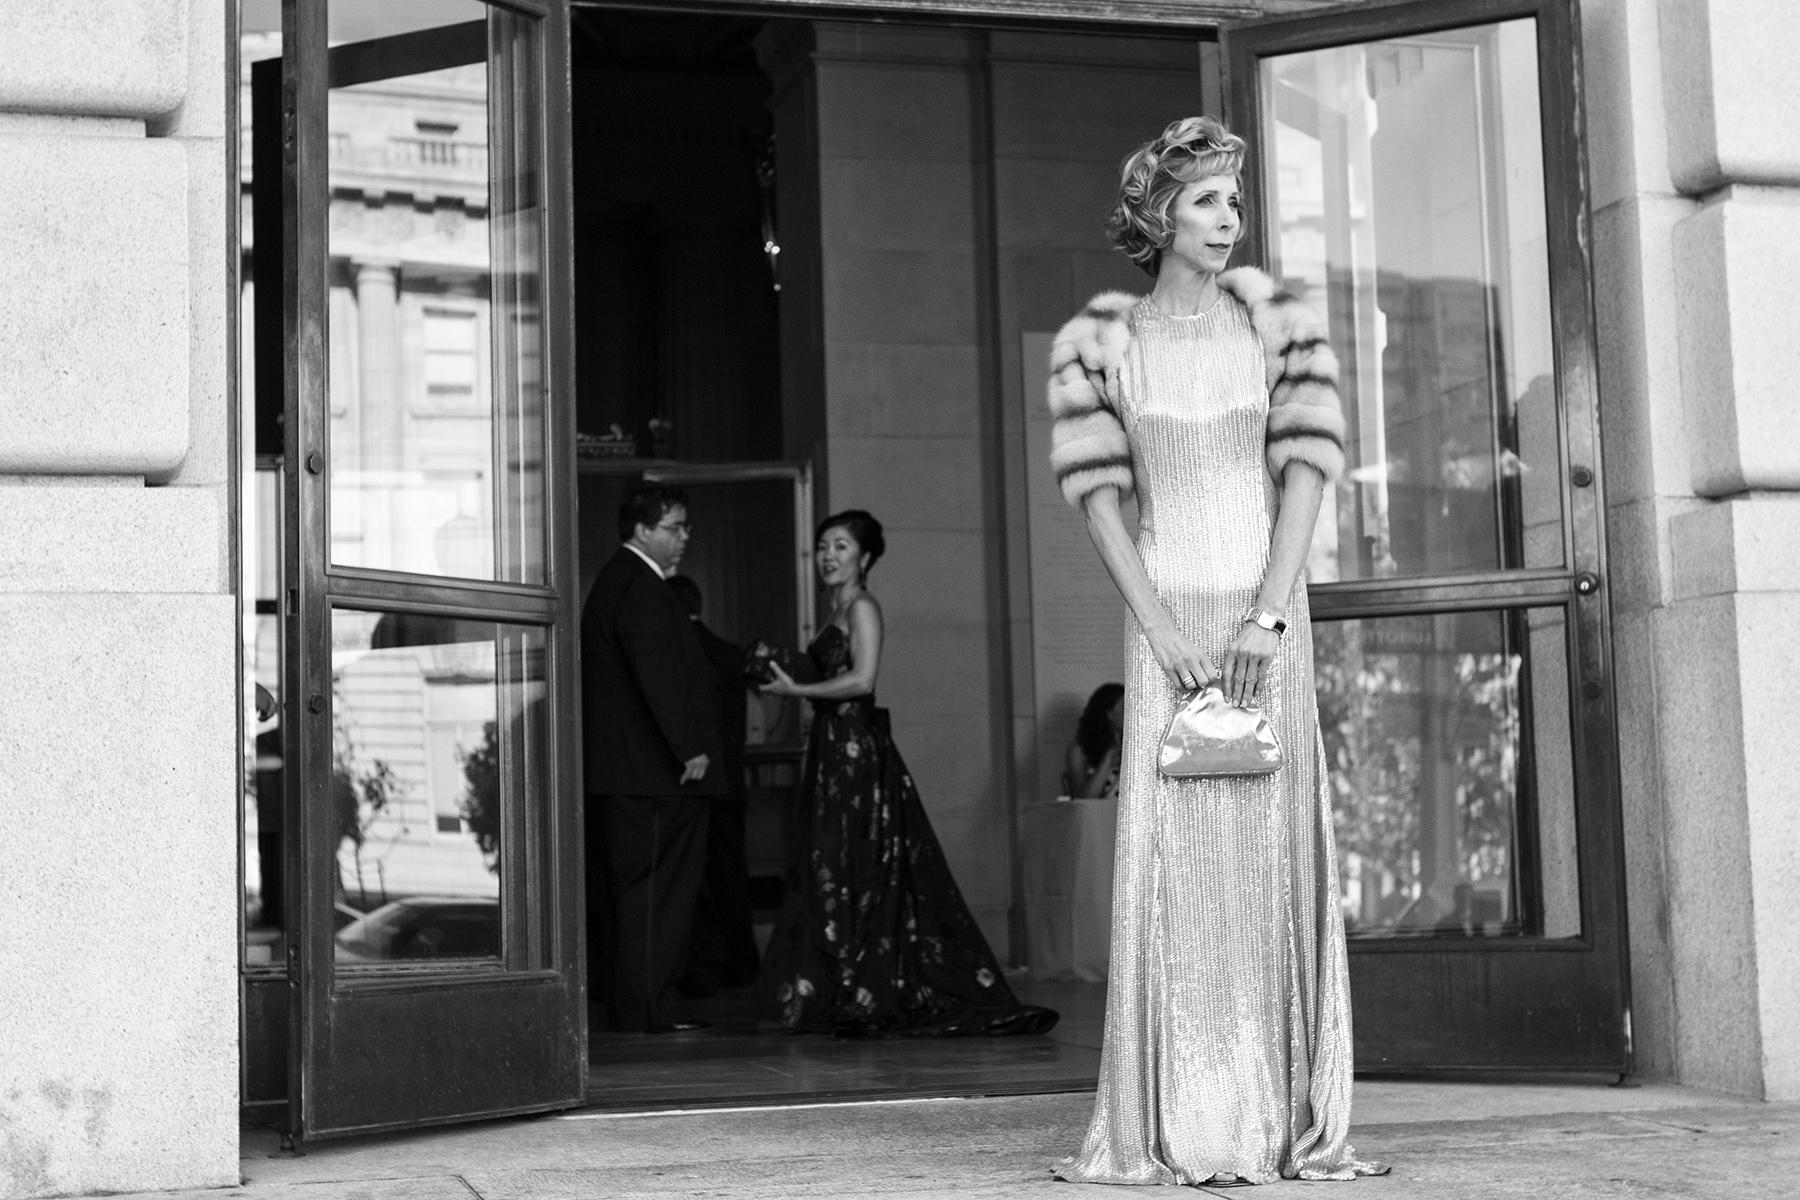 Nancy Kukacka stands outside the opera house before entering the San Francisco Opera Ball in San Francisco, Calif., on Friday, September 9, 2011. This photograph is of a candid moment and was not directed in any way.